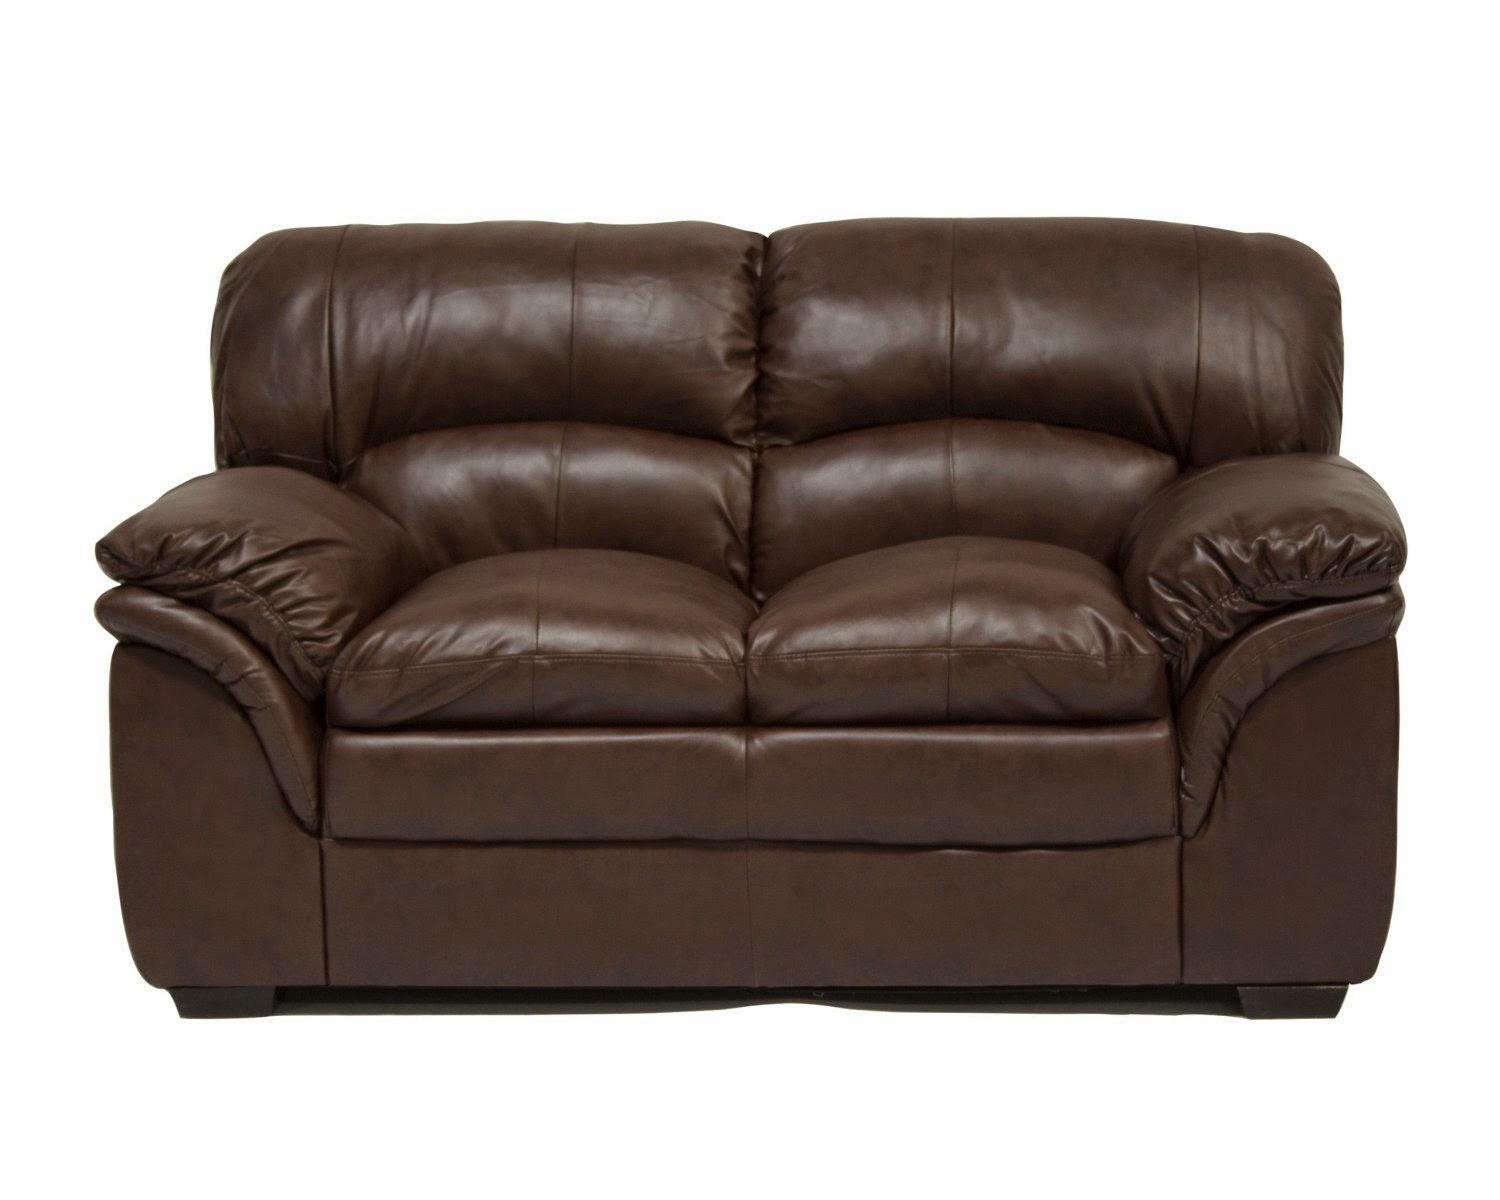 Best Reclining Sofa For The Money: Two Seater Reclining Leather Sofas Within 2 Seater Recliner Leather Sofas (Image 4 of 20)